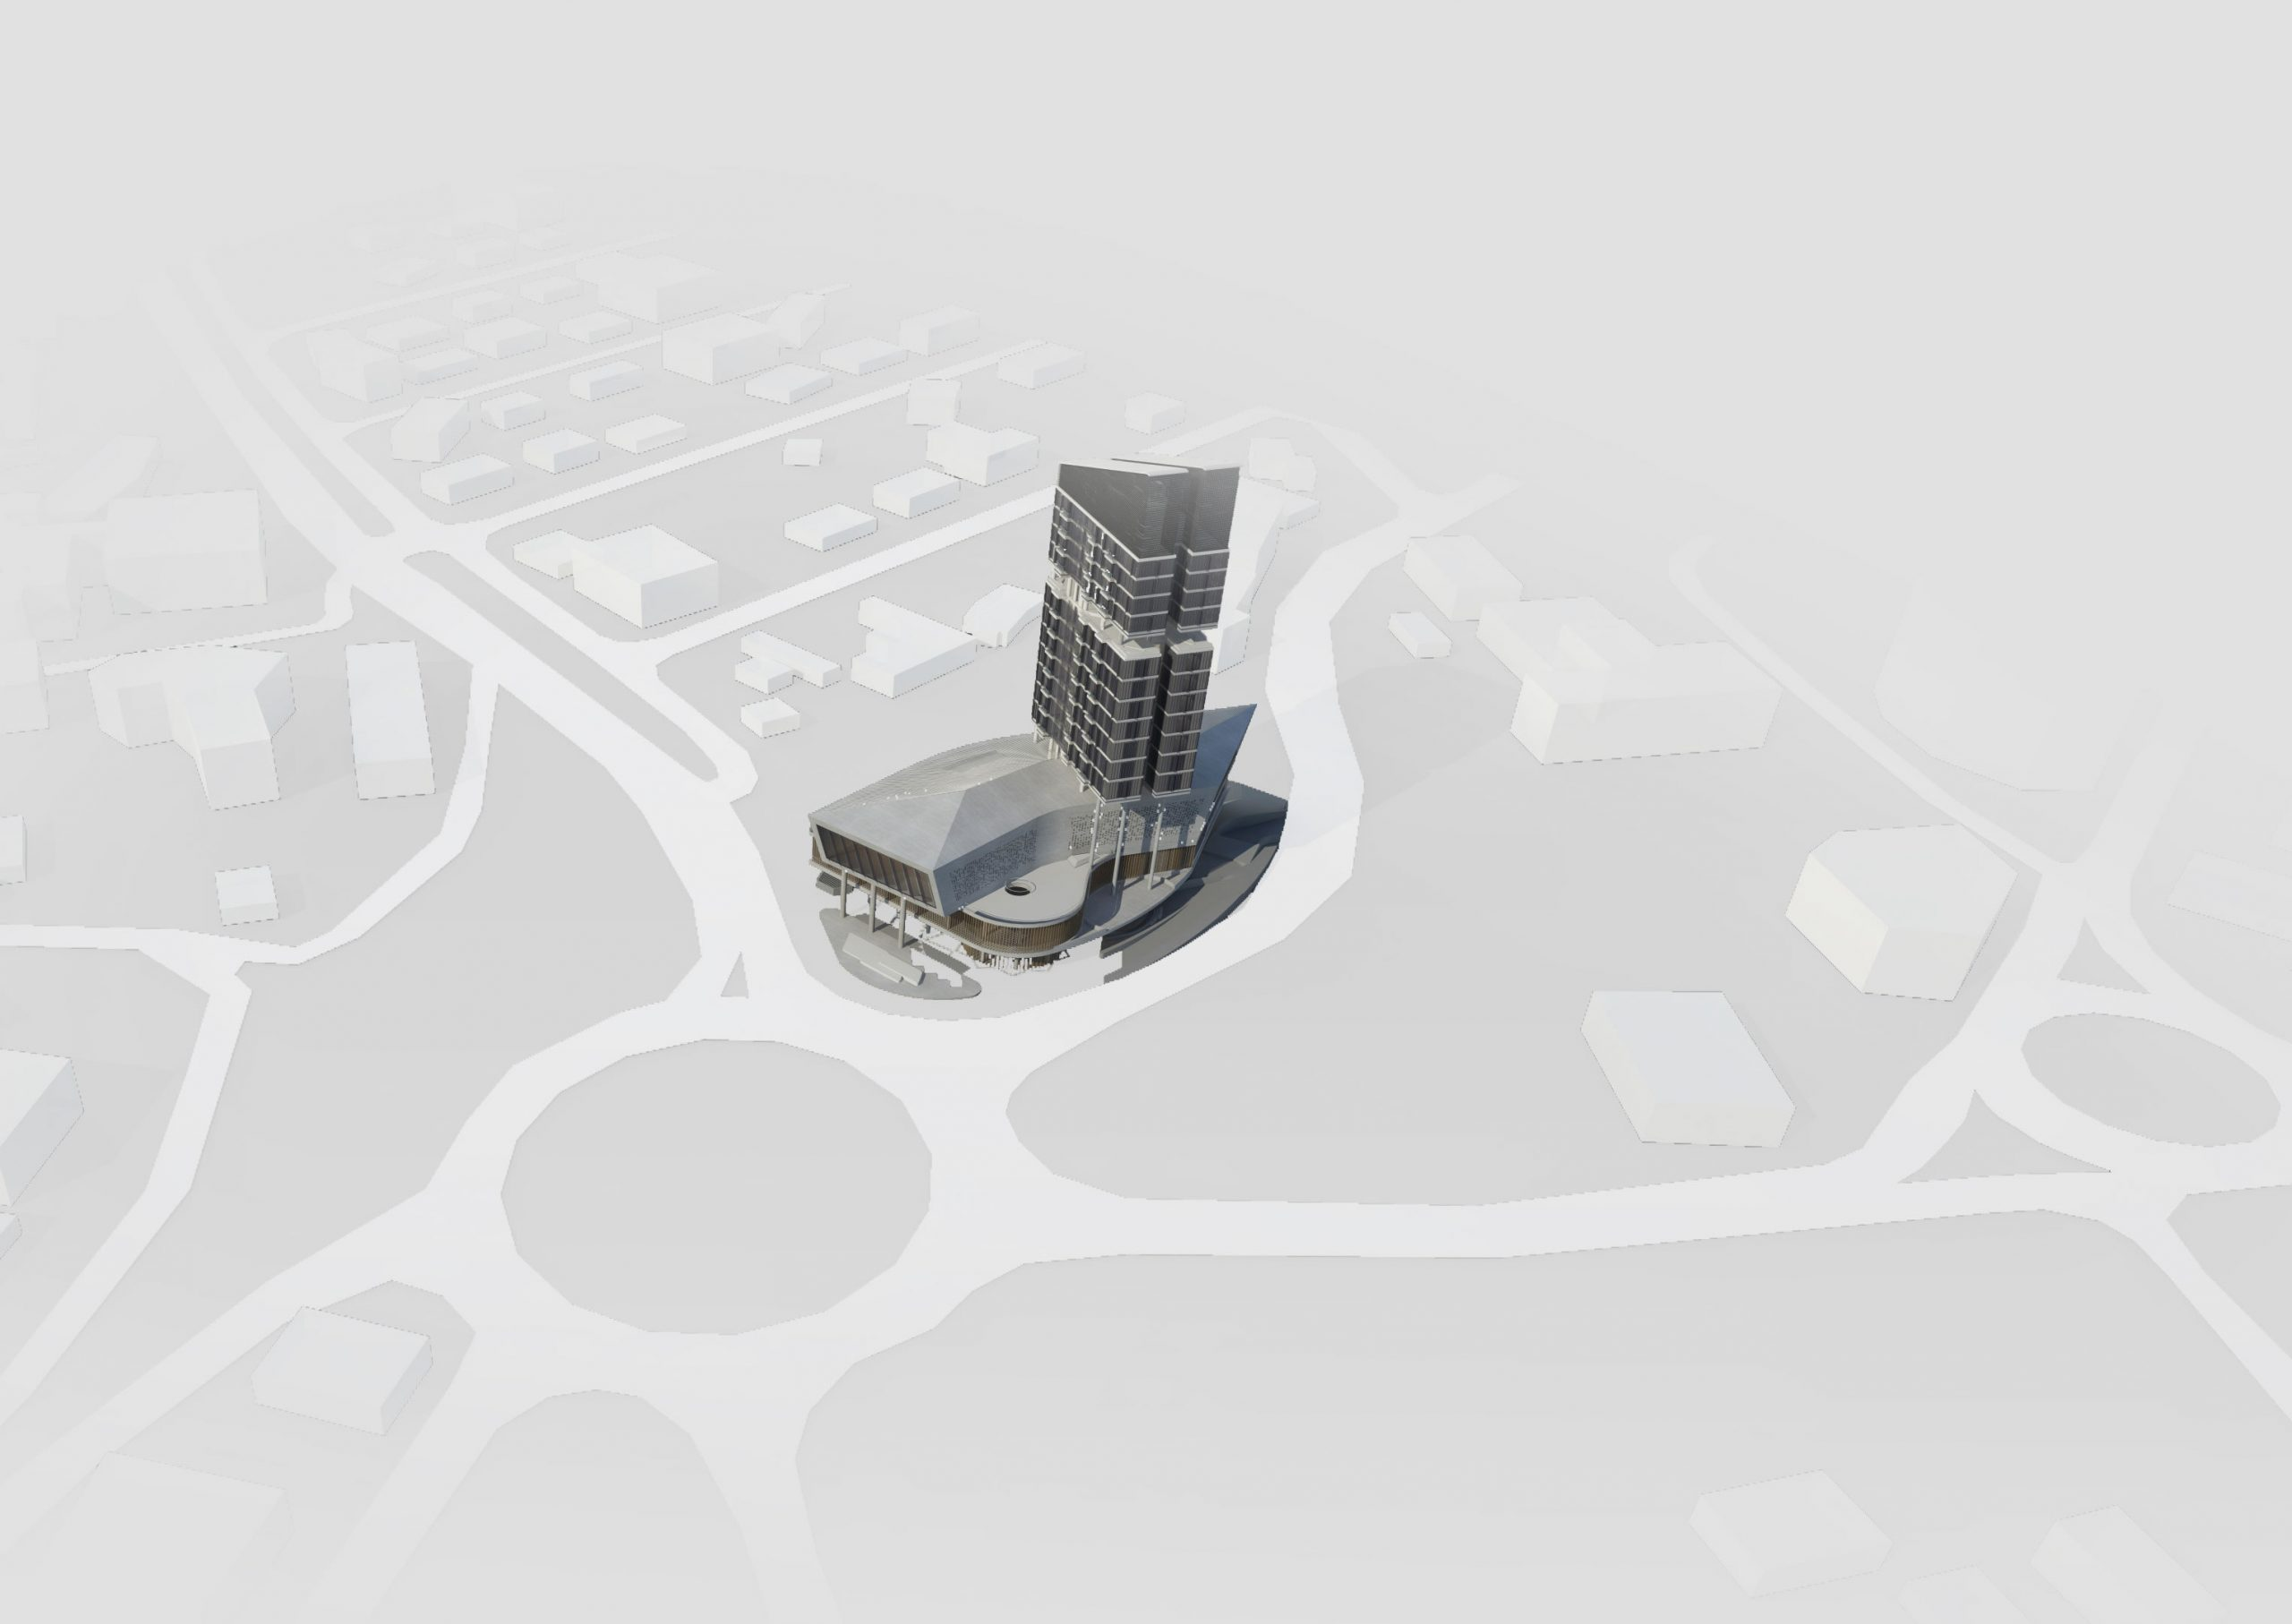 ARCHITECTURAL DESIGN COMPETITION OF RSSB - MIXED USE BUILDING